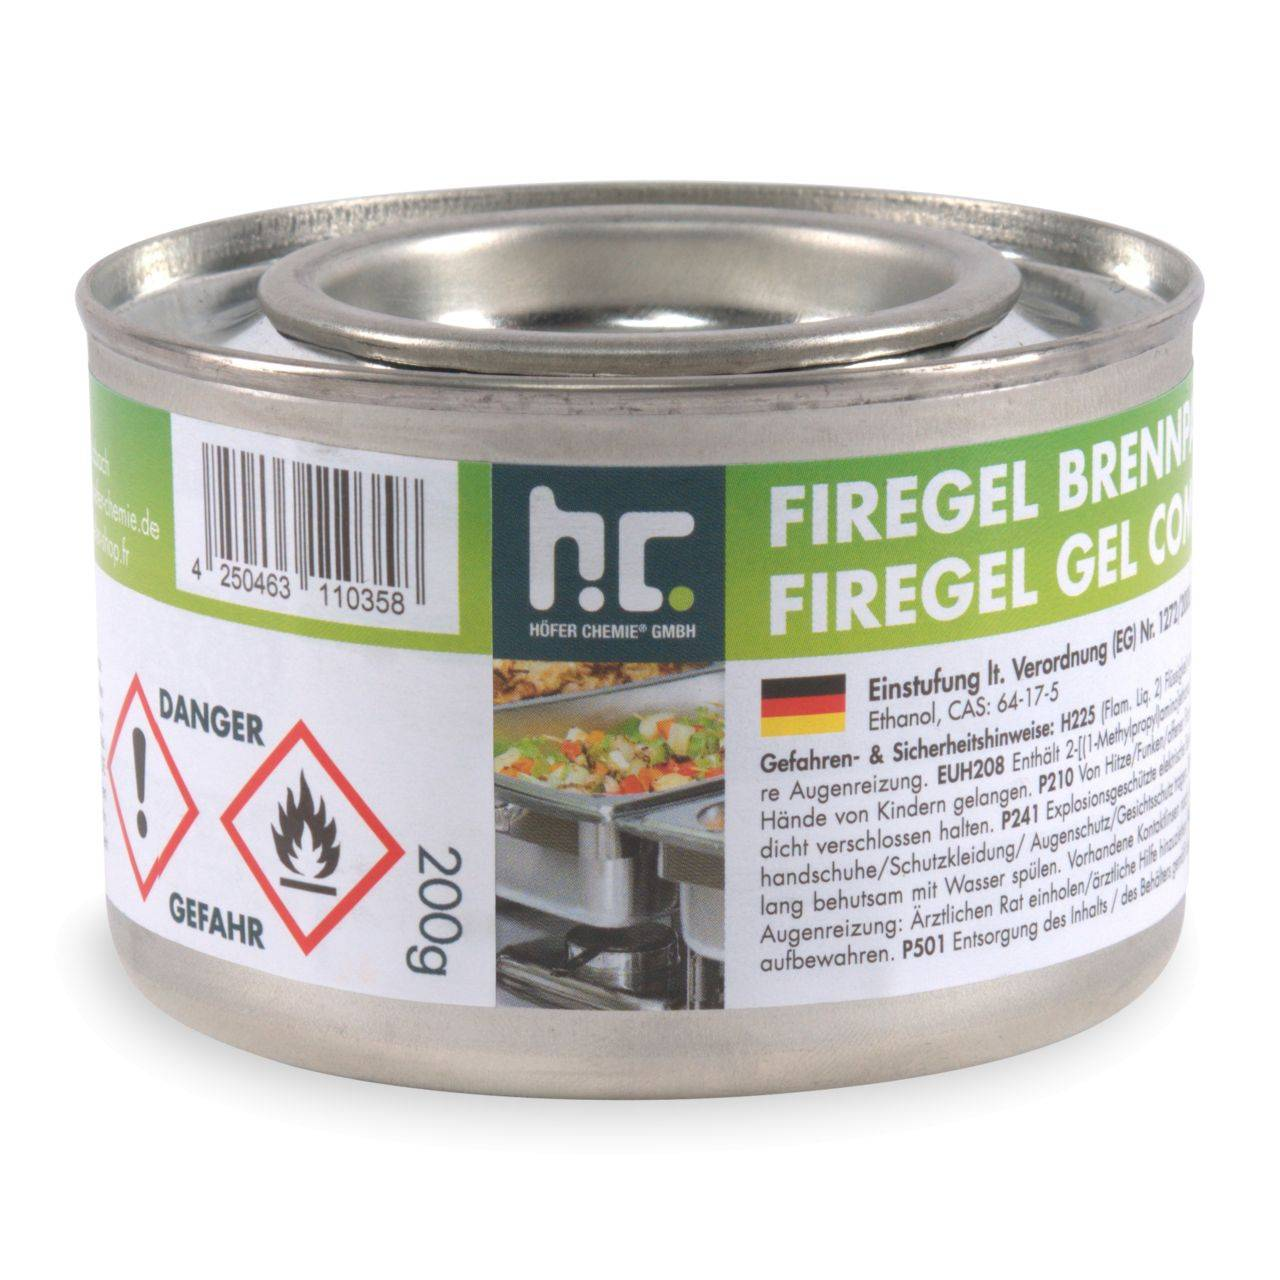 Höfer Chemie 1,2 kg 200g gel combustible (6 x 200g)